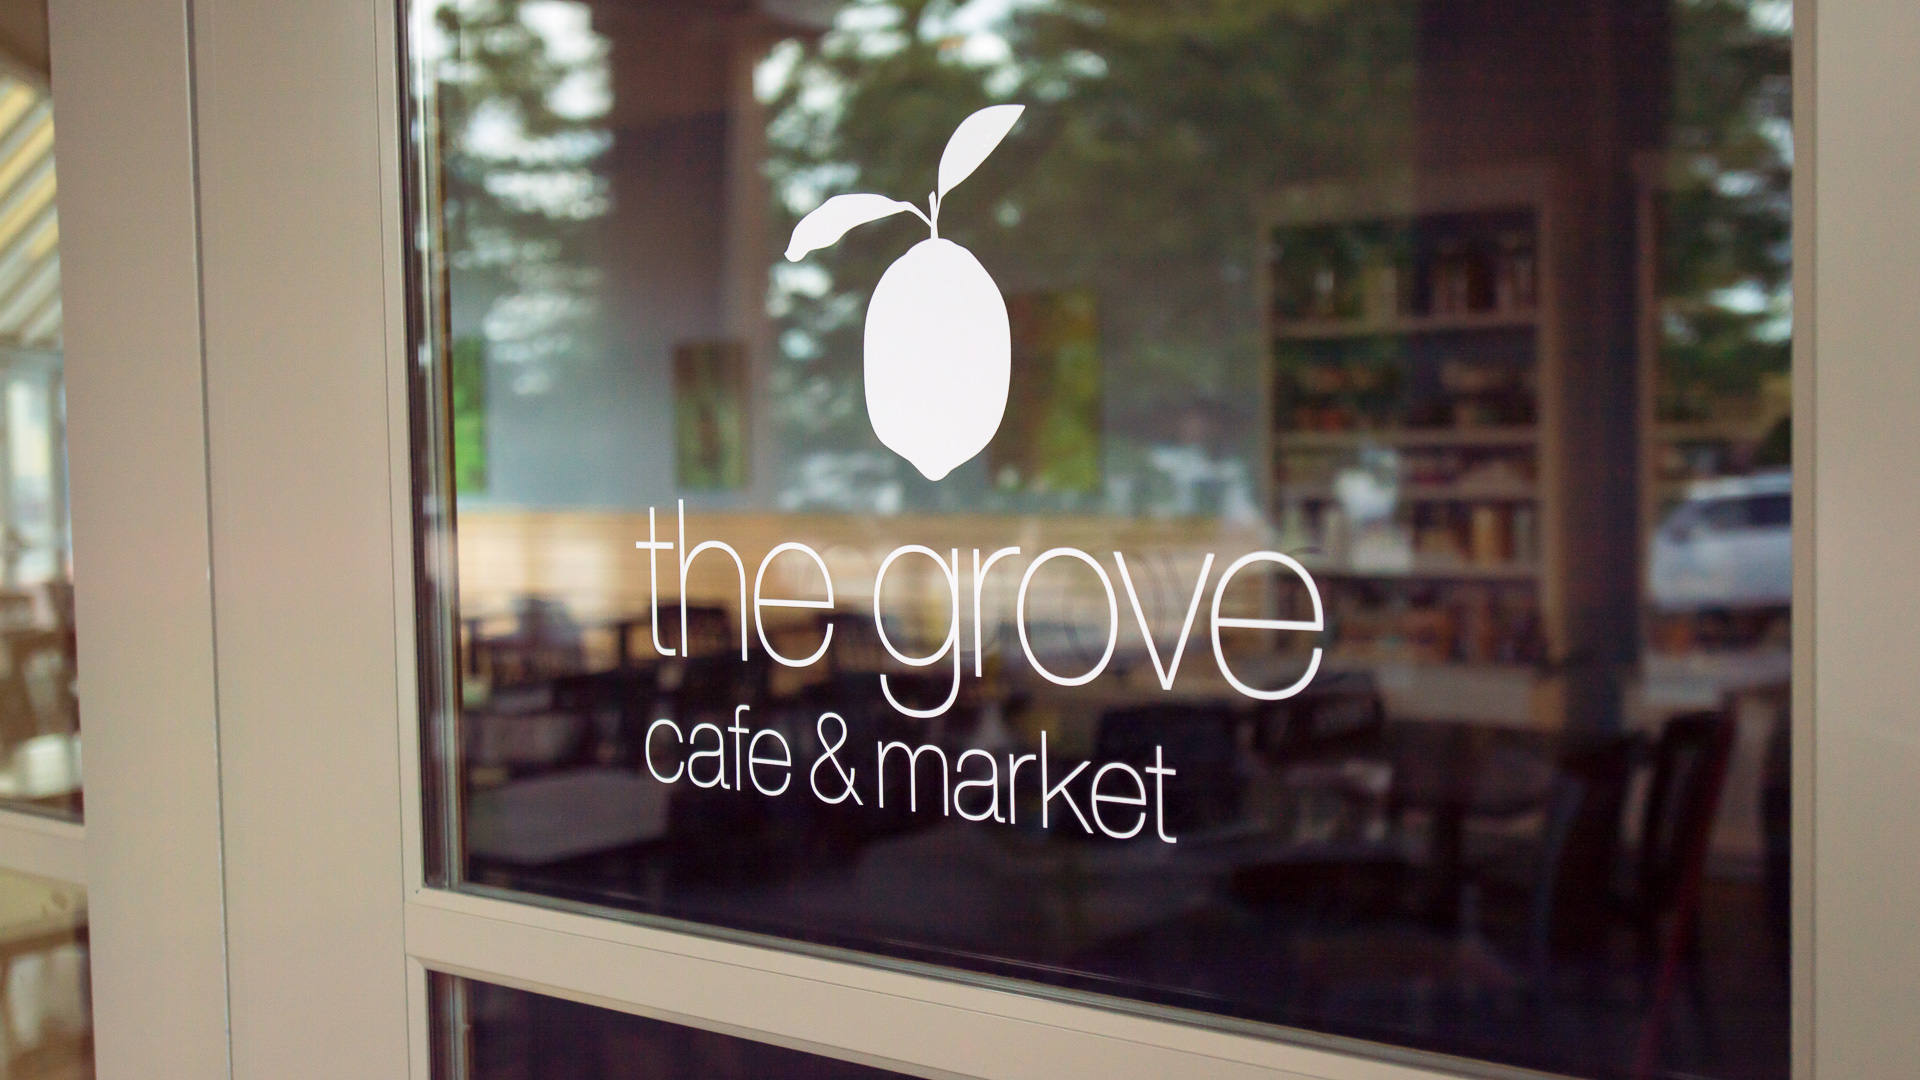 The Grove, White Vinyl Lettering